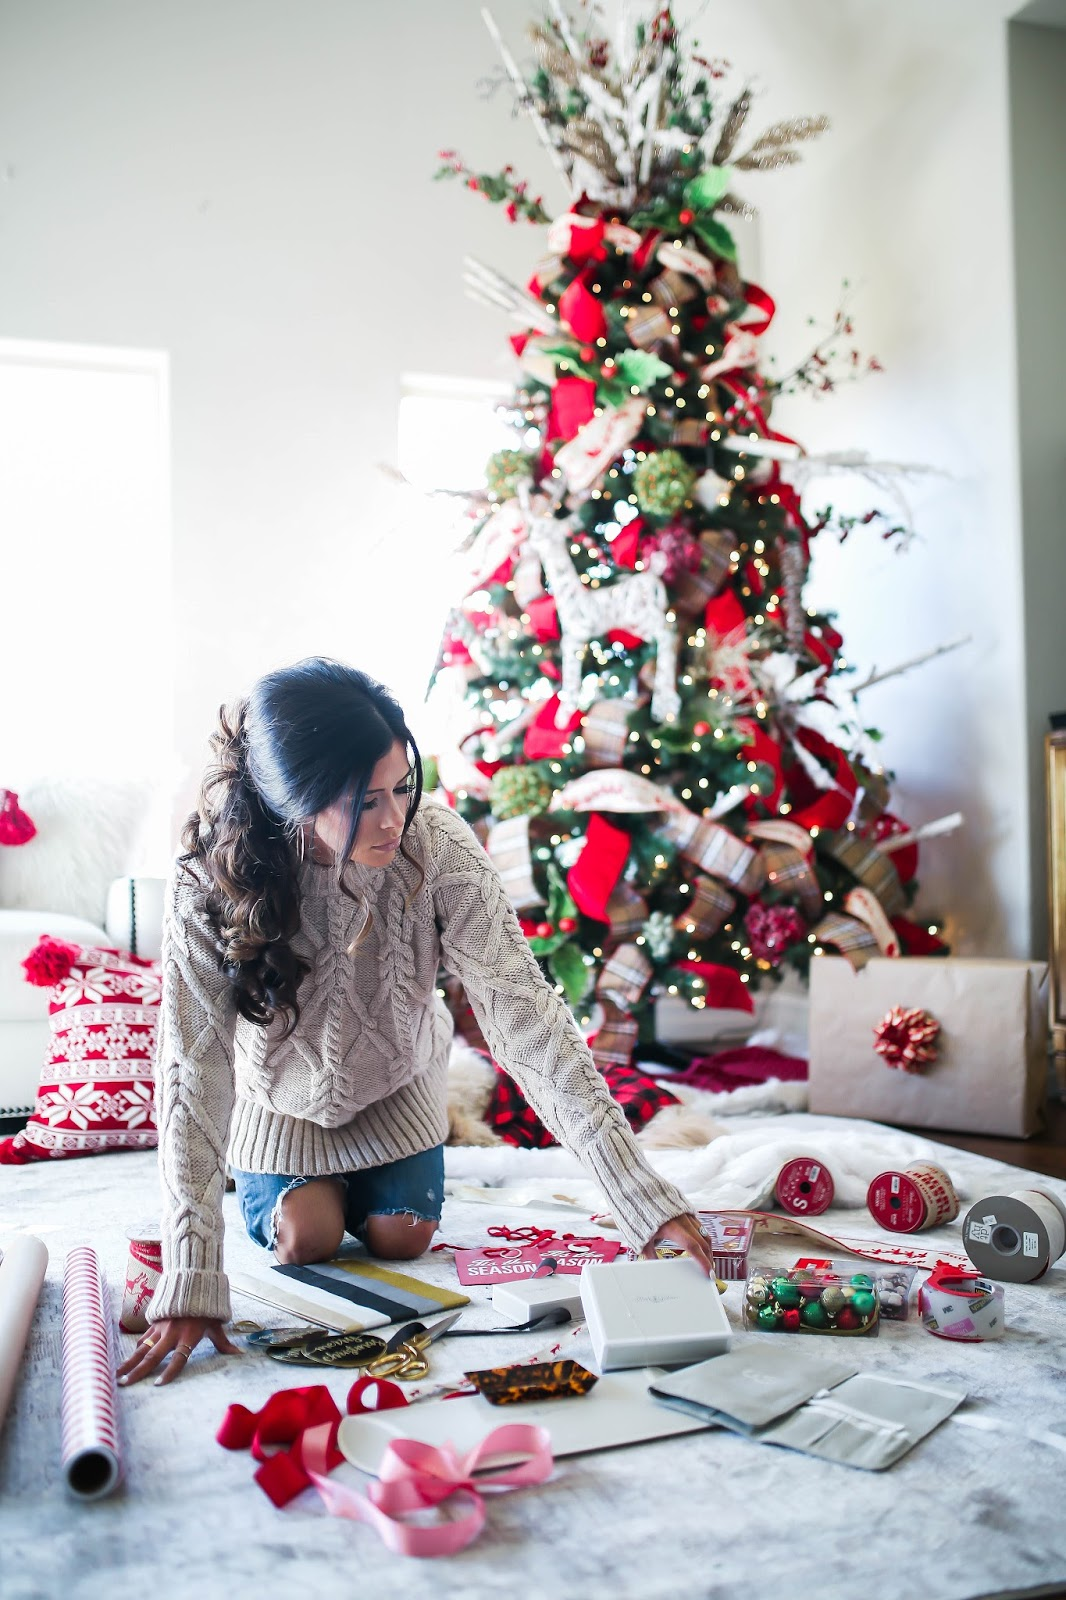 Photo of Pile of Christmas gifts under a Christmas tree ... |Wrapped Christmas Presents Under The Tree